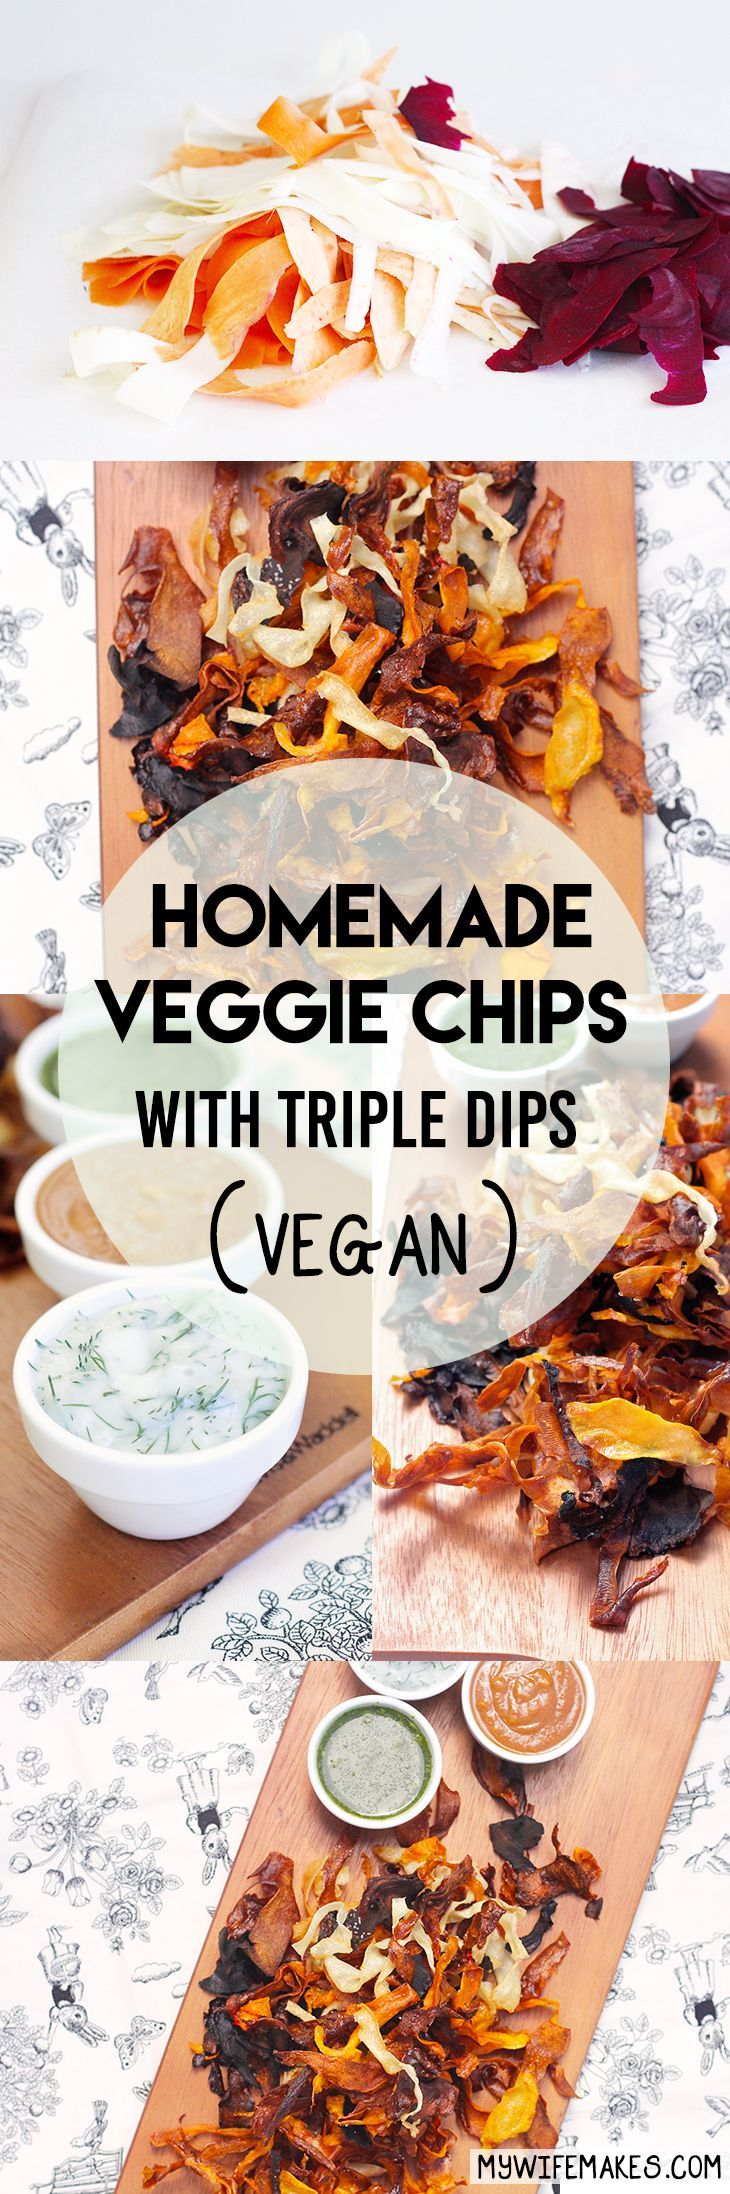 A simple, low-cost recipe for homemade Vegan-Friendly Veggie Chips, complete with special 'Cross-Cultural' Dipping Sauces (Coriander Chutney, Vegan Lemon Dill Mayonnaise and Hoisin Peanut Sauce). #vegan #veganfood #chips #homemade #recipes #vegetarian